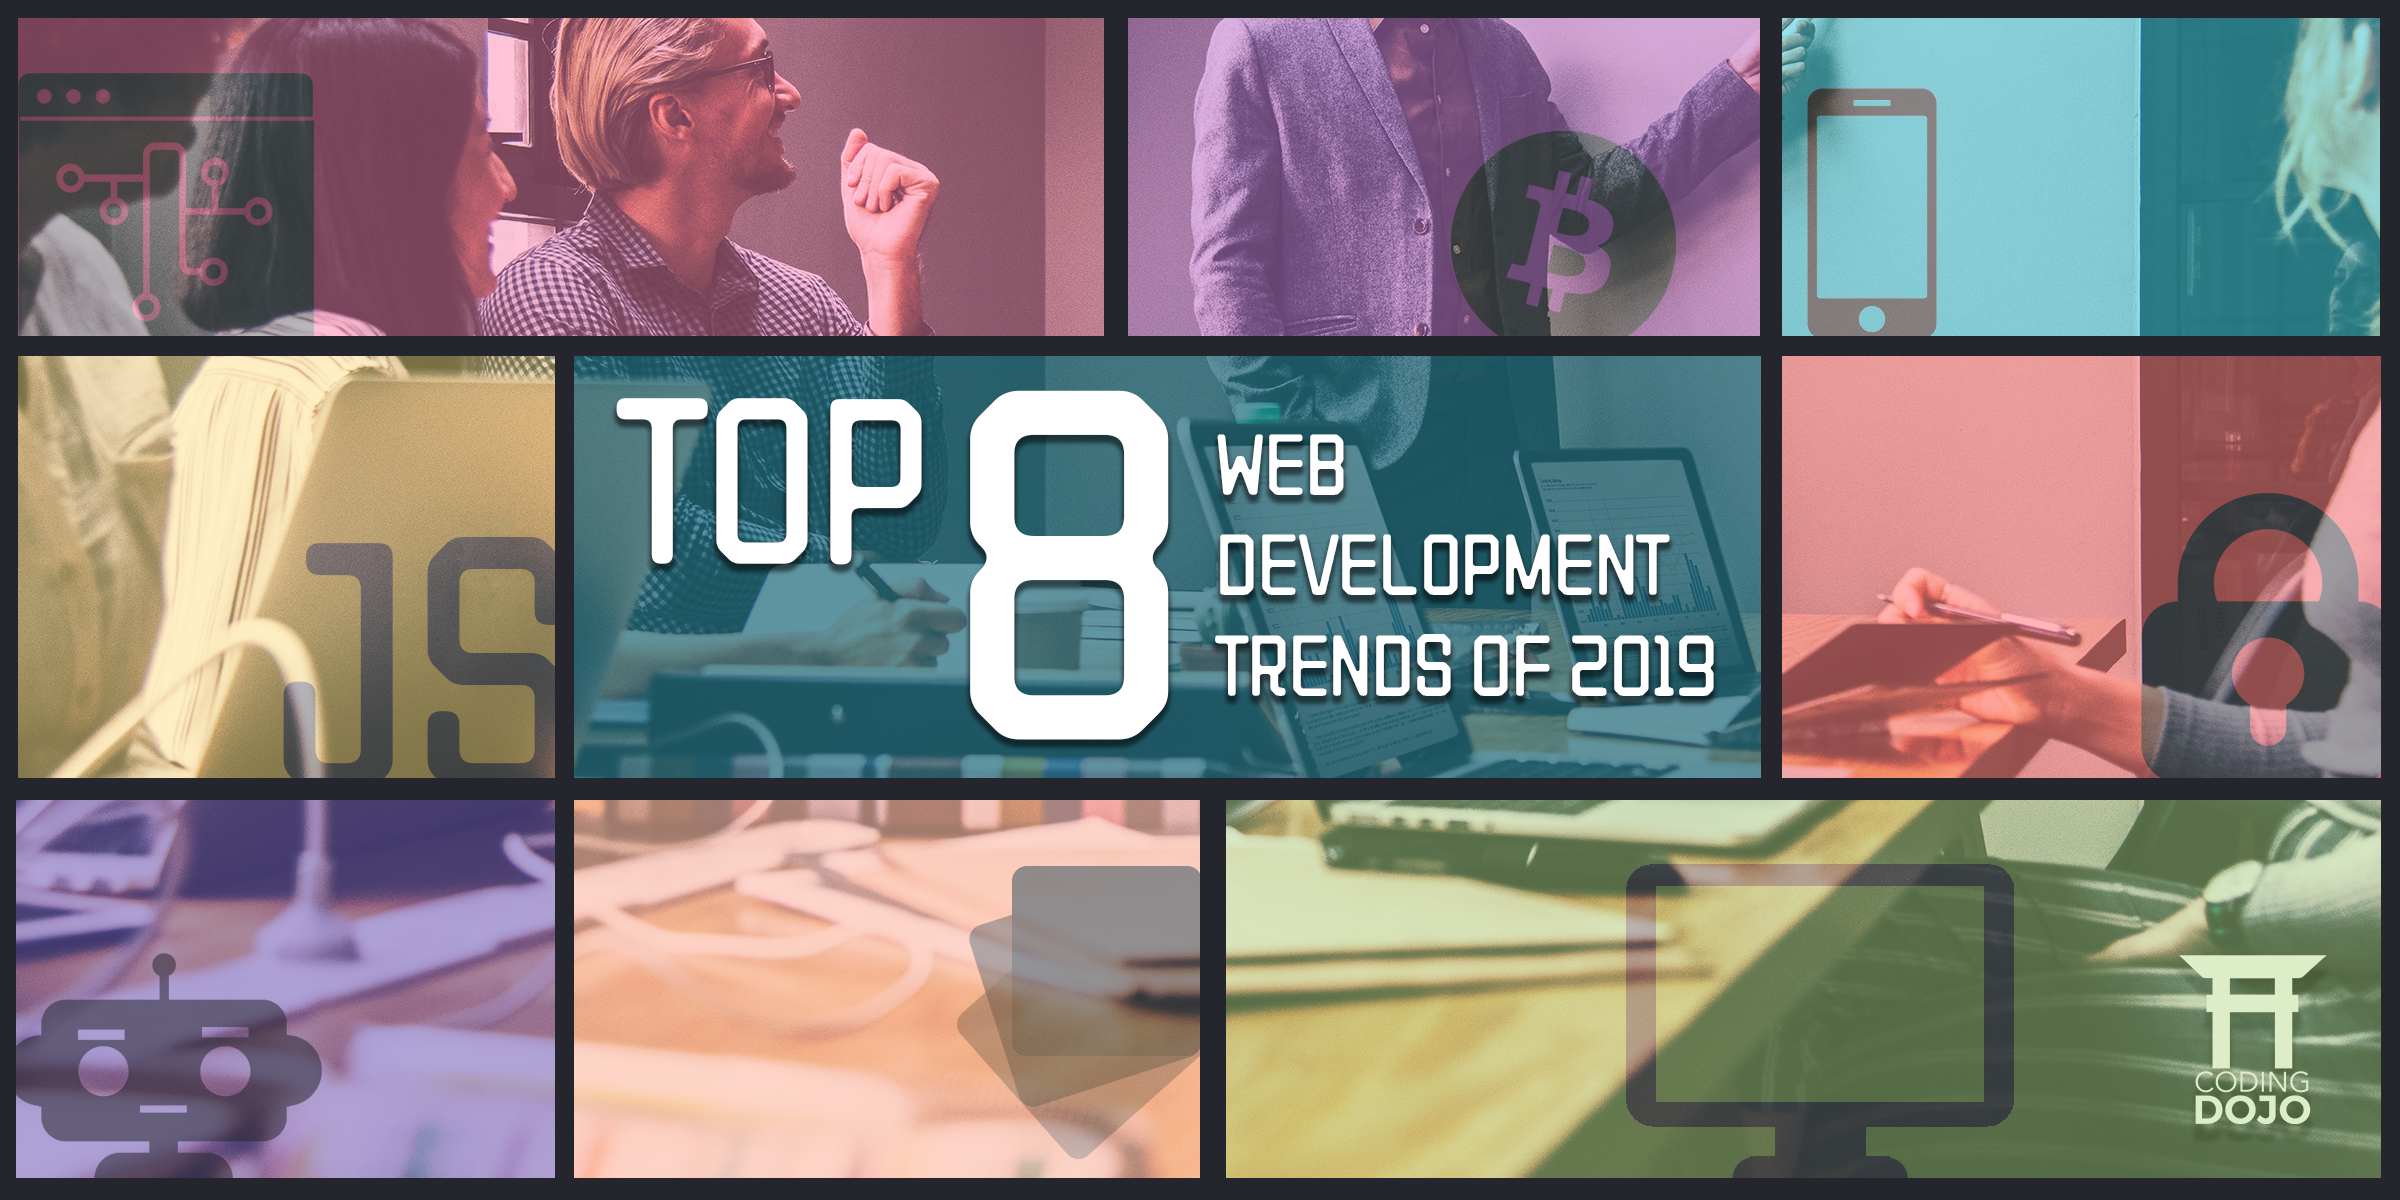 Top 8 Web Development Trends of 2019 Header